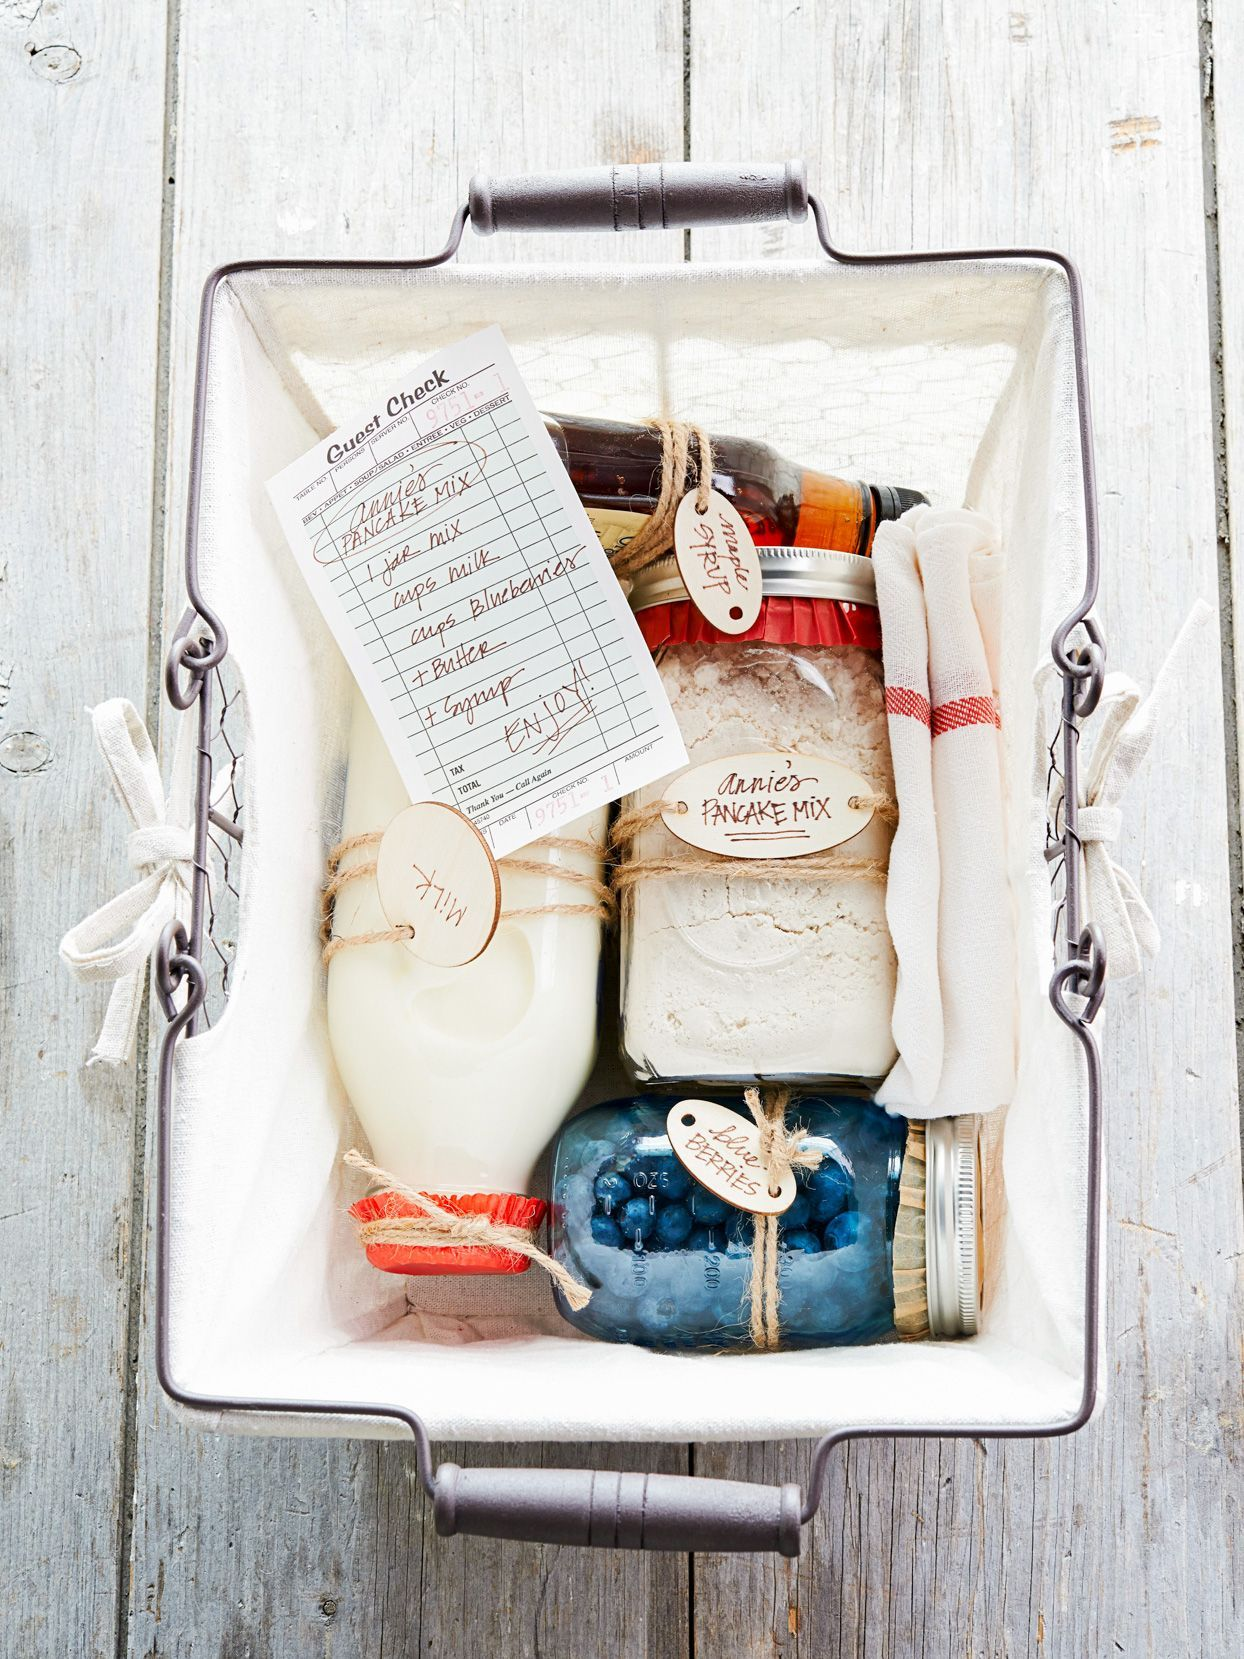 51 DIY Food Gifts Way Sweeter Than Store-Bought